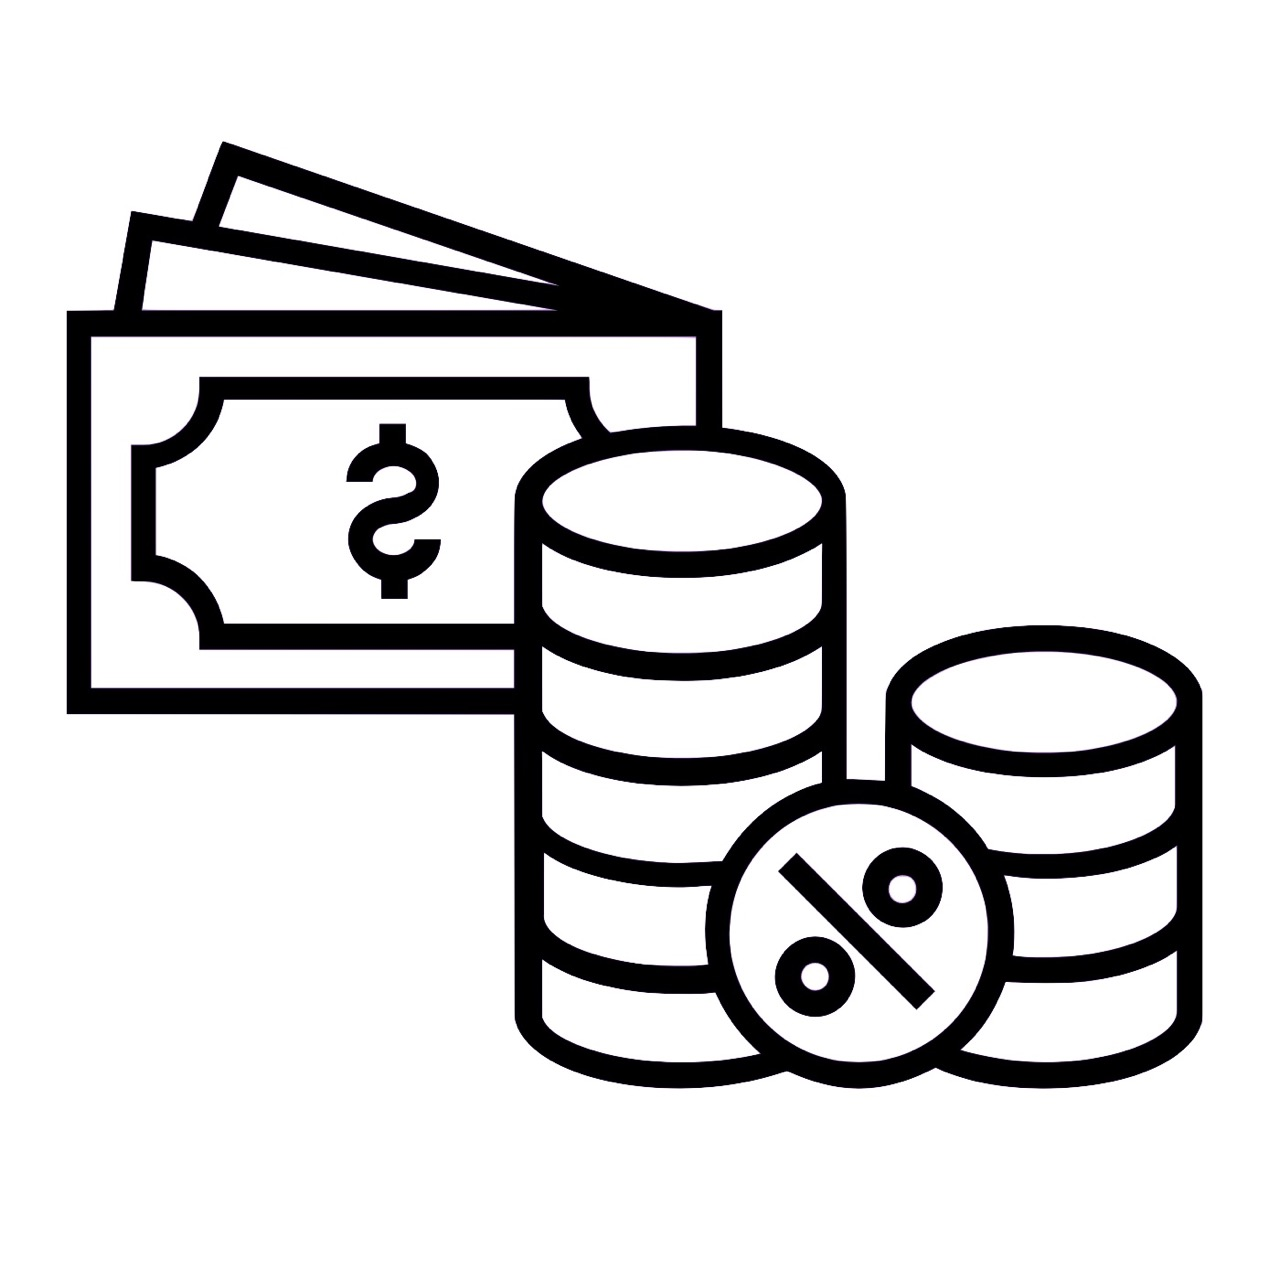 23 kisspng-portable-network-graphics-clip-art-computer-icons-money-icon-love-ultimately-5cb7123d691df2.1667456815555016294306